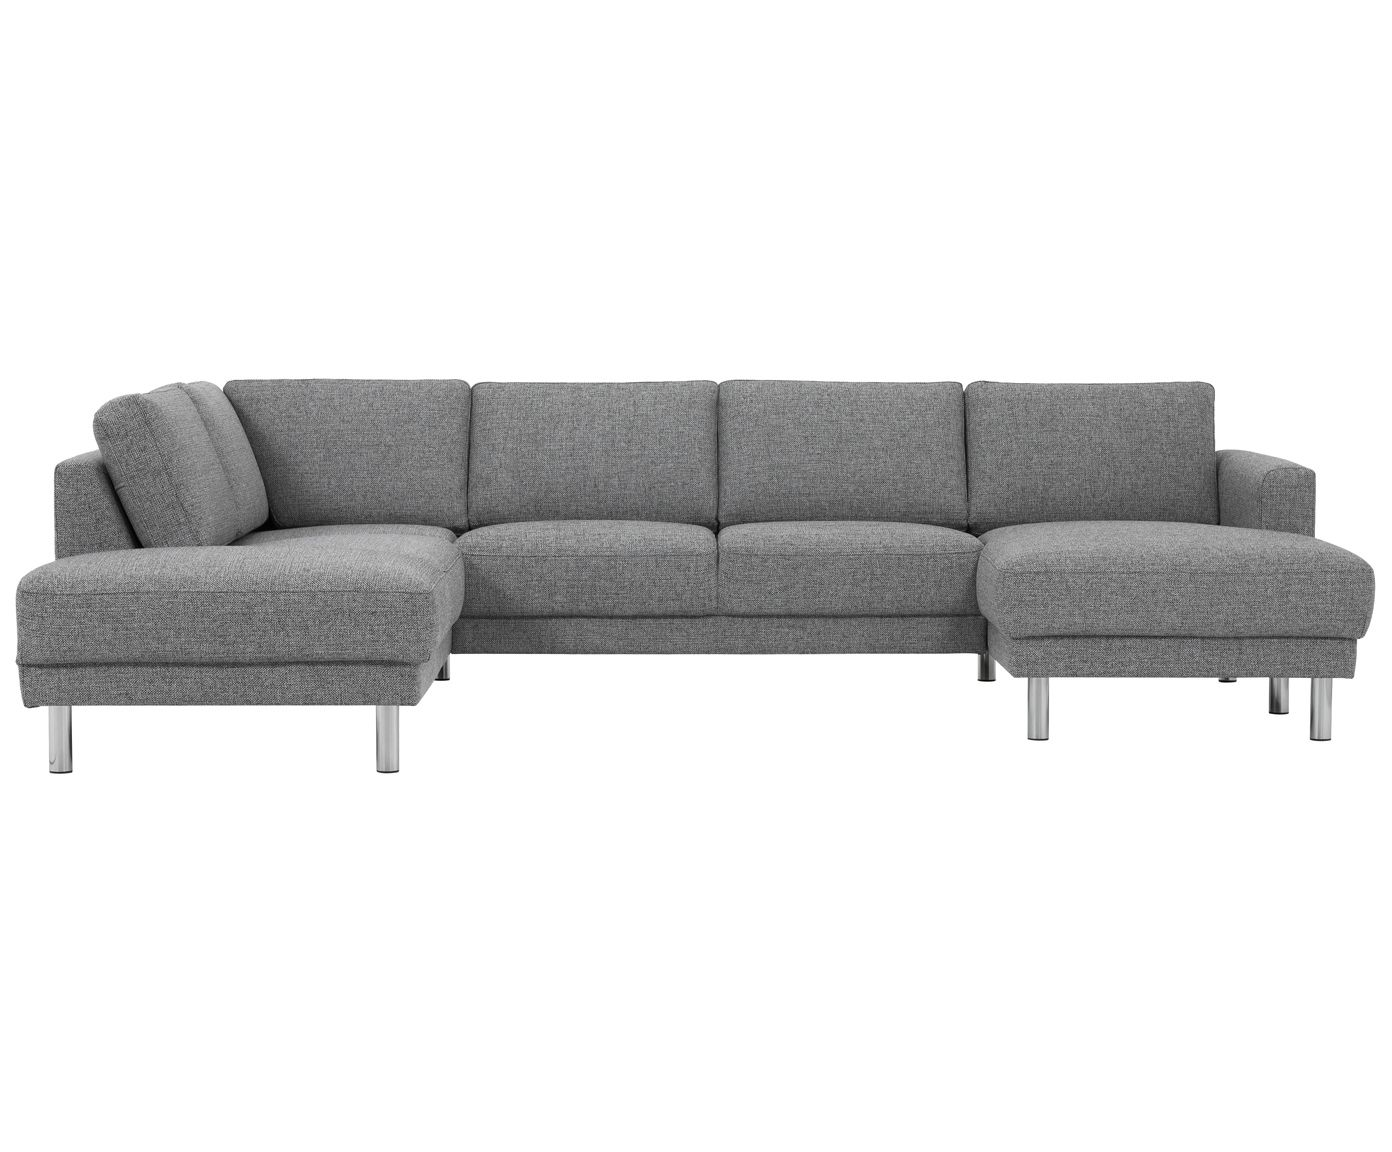 Smart Ecksofa Anna Sofa Wohnlandschaft Cleveland Eckteil Links New Berlin Flat